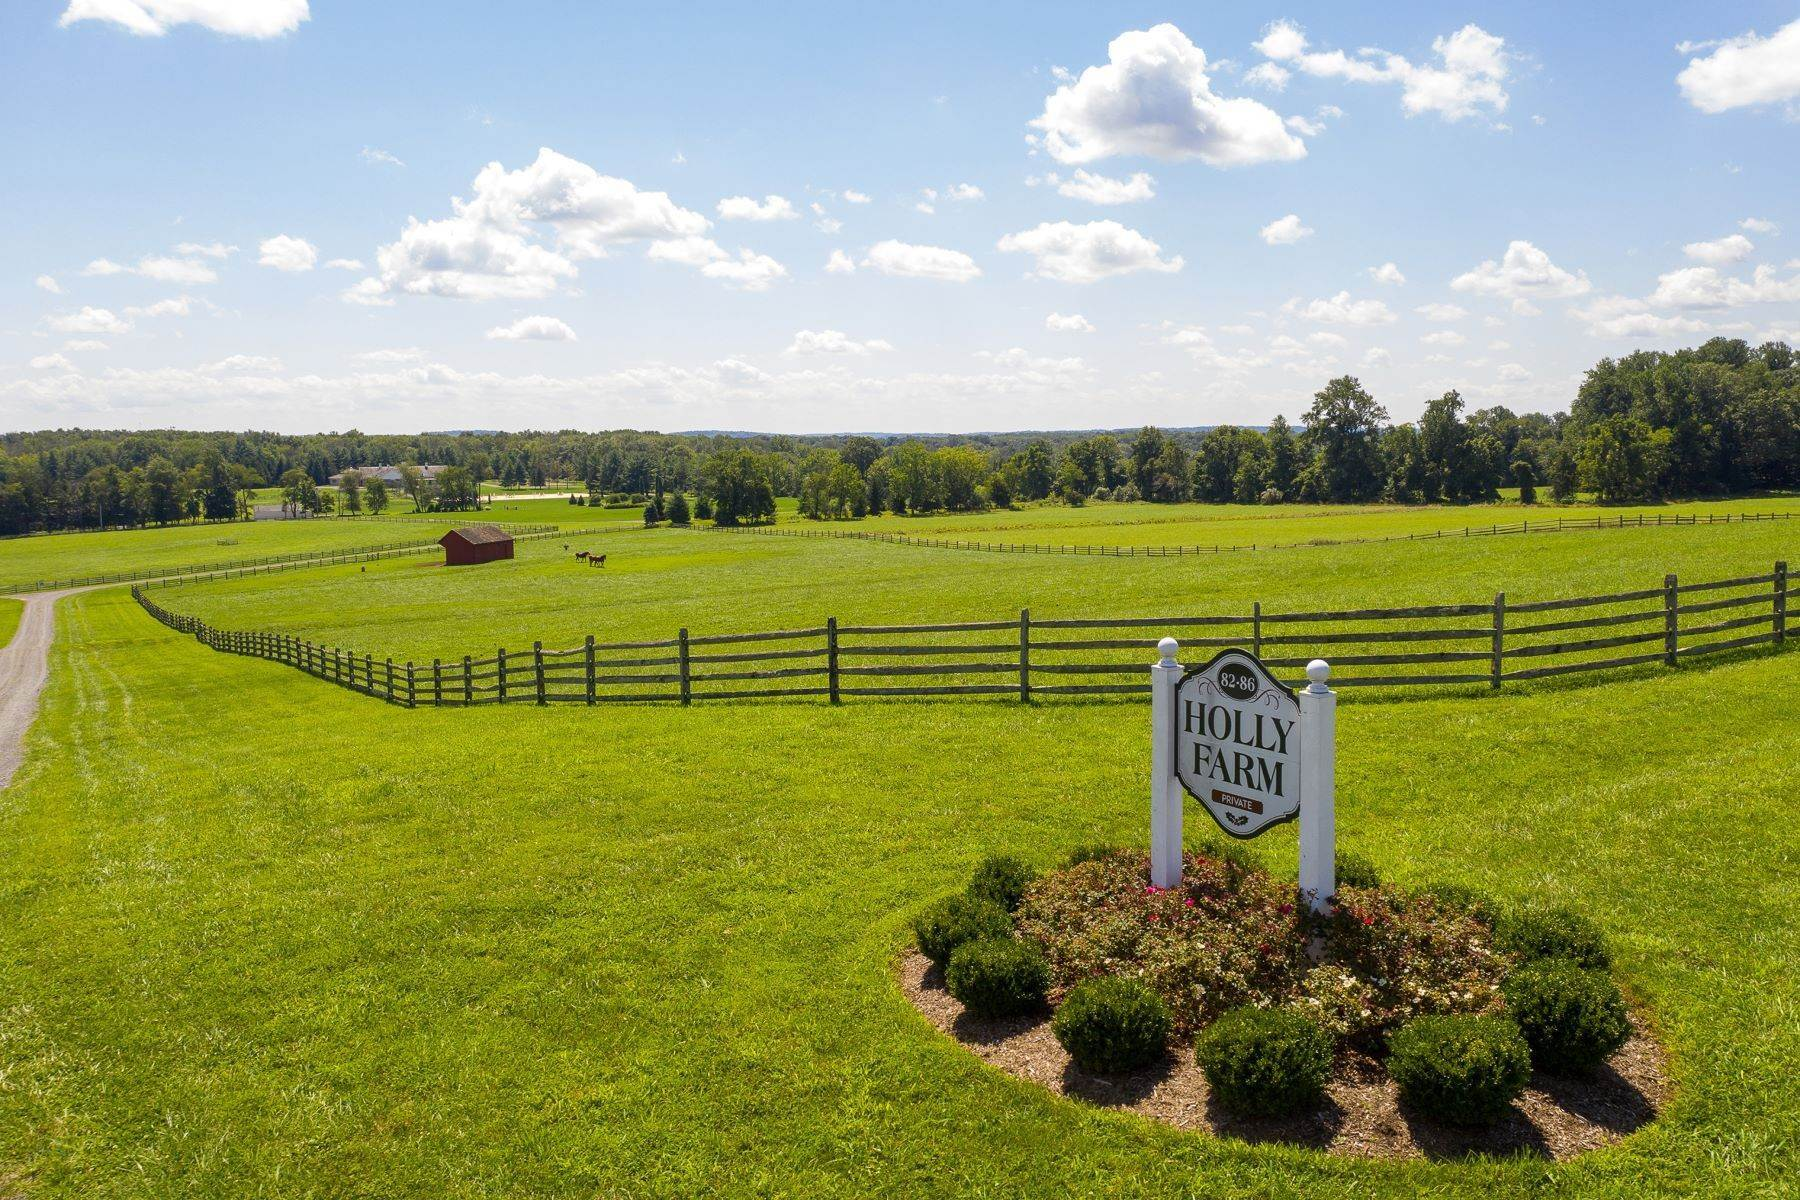 18. Farm and Ranch Properties for Sale at Holly Farm 86 SANDY RIDGE RD, Stockton, New Jersey 08559 United States